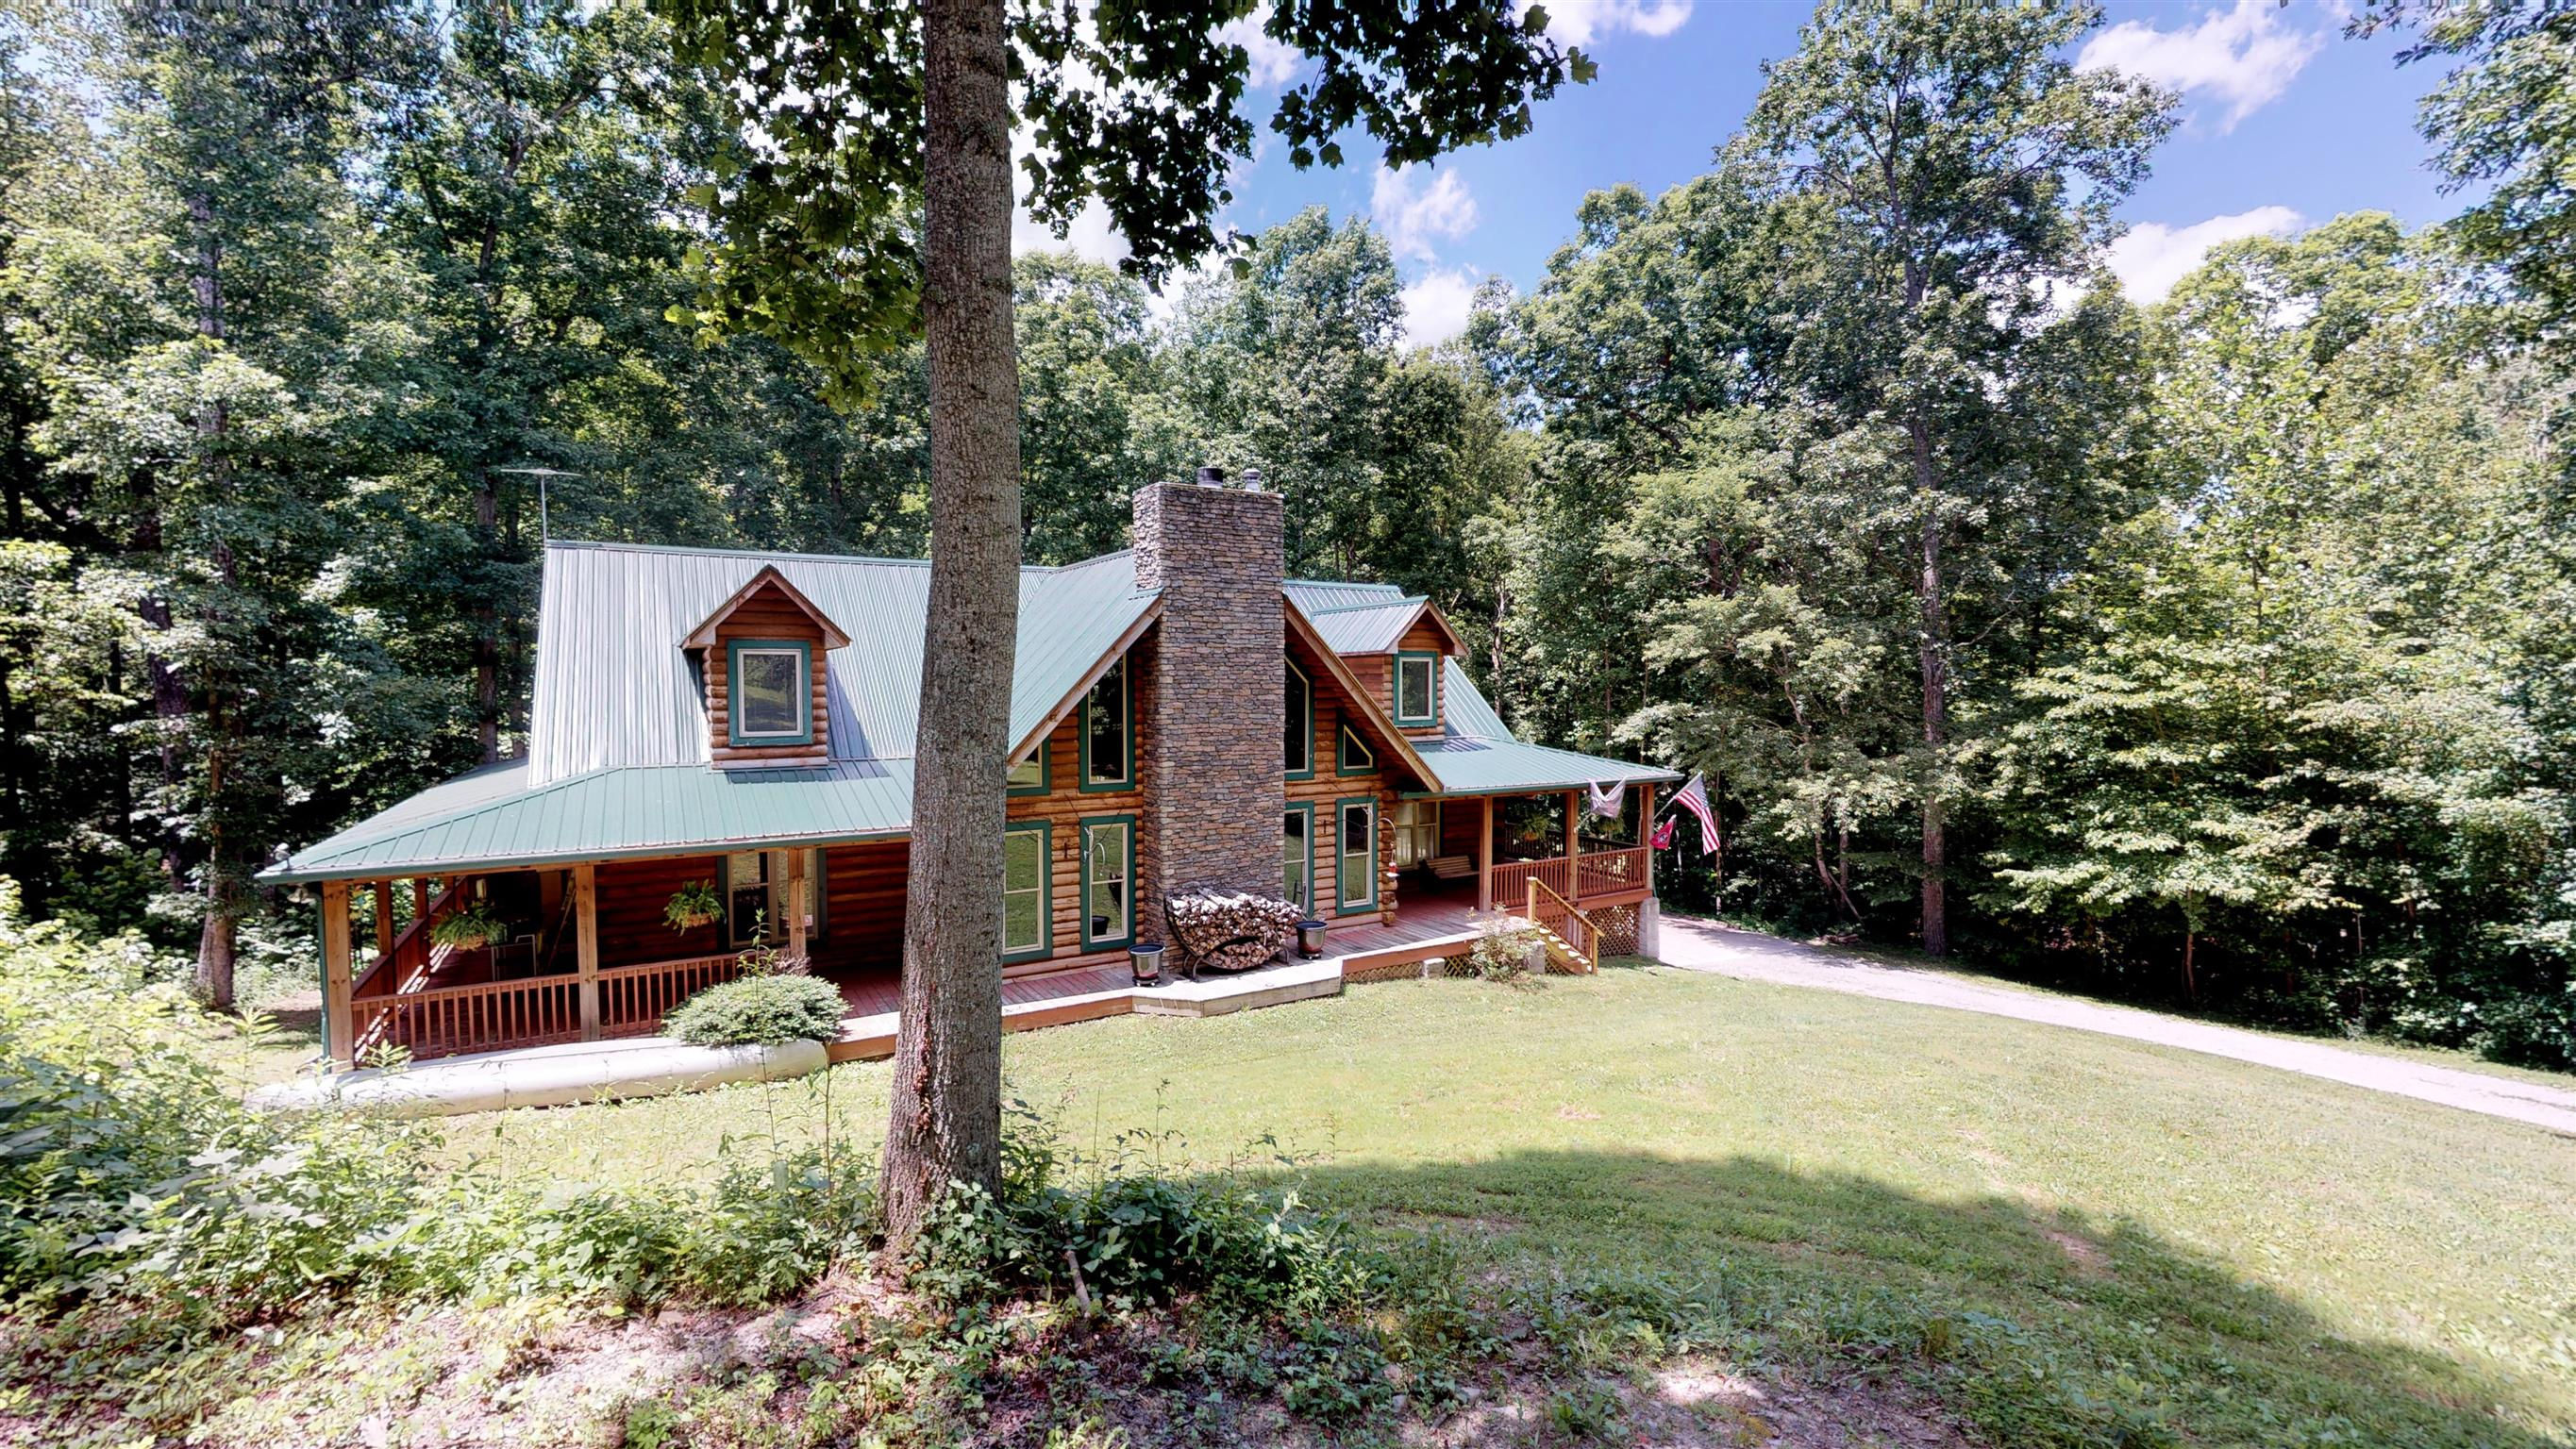 7117 Haskell School Rd, one of homes for sale in Fairview